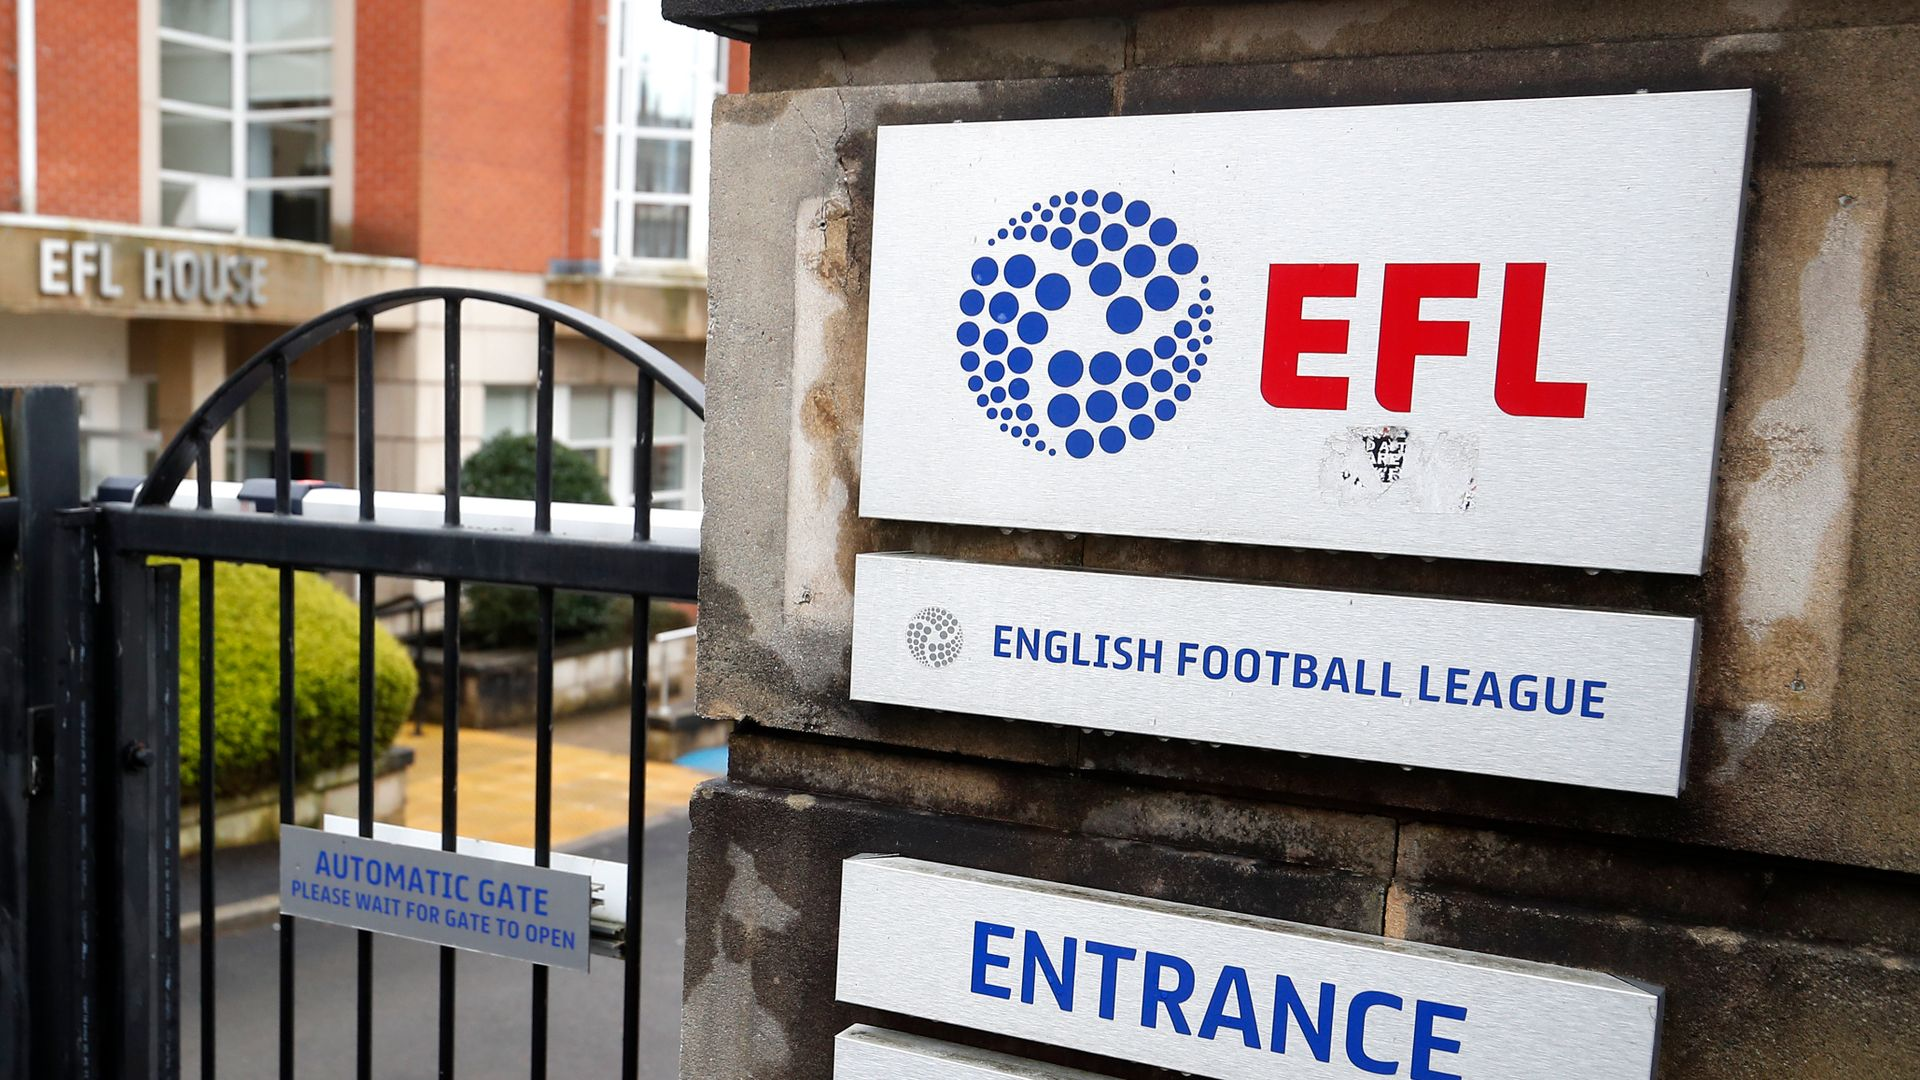 No EFL training until May 25 at earliest